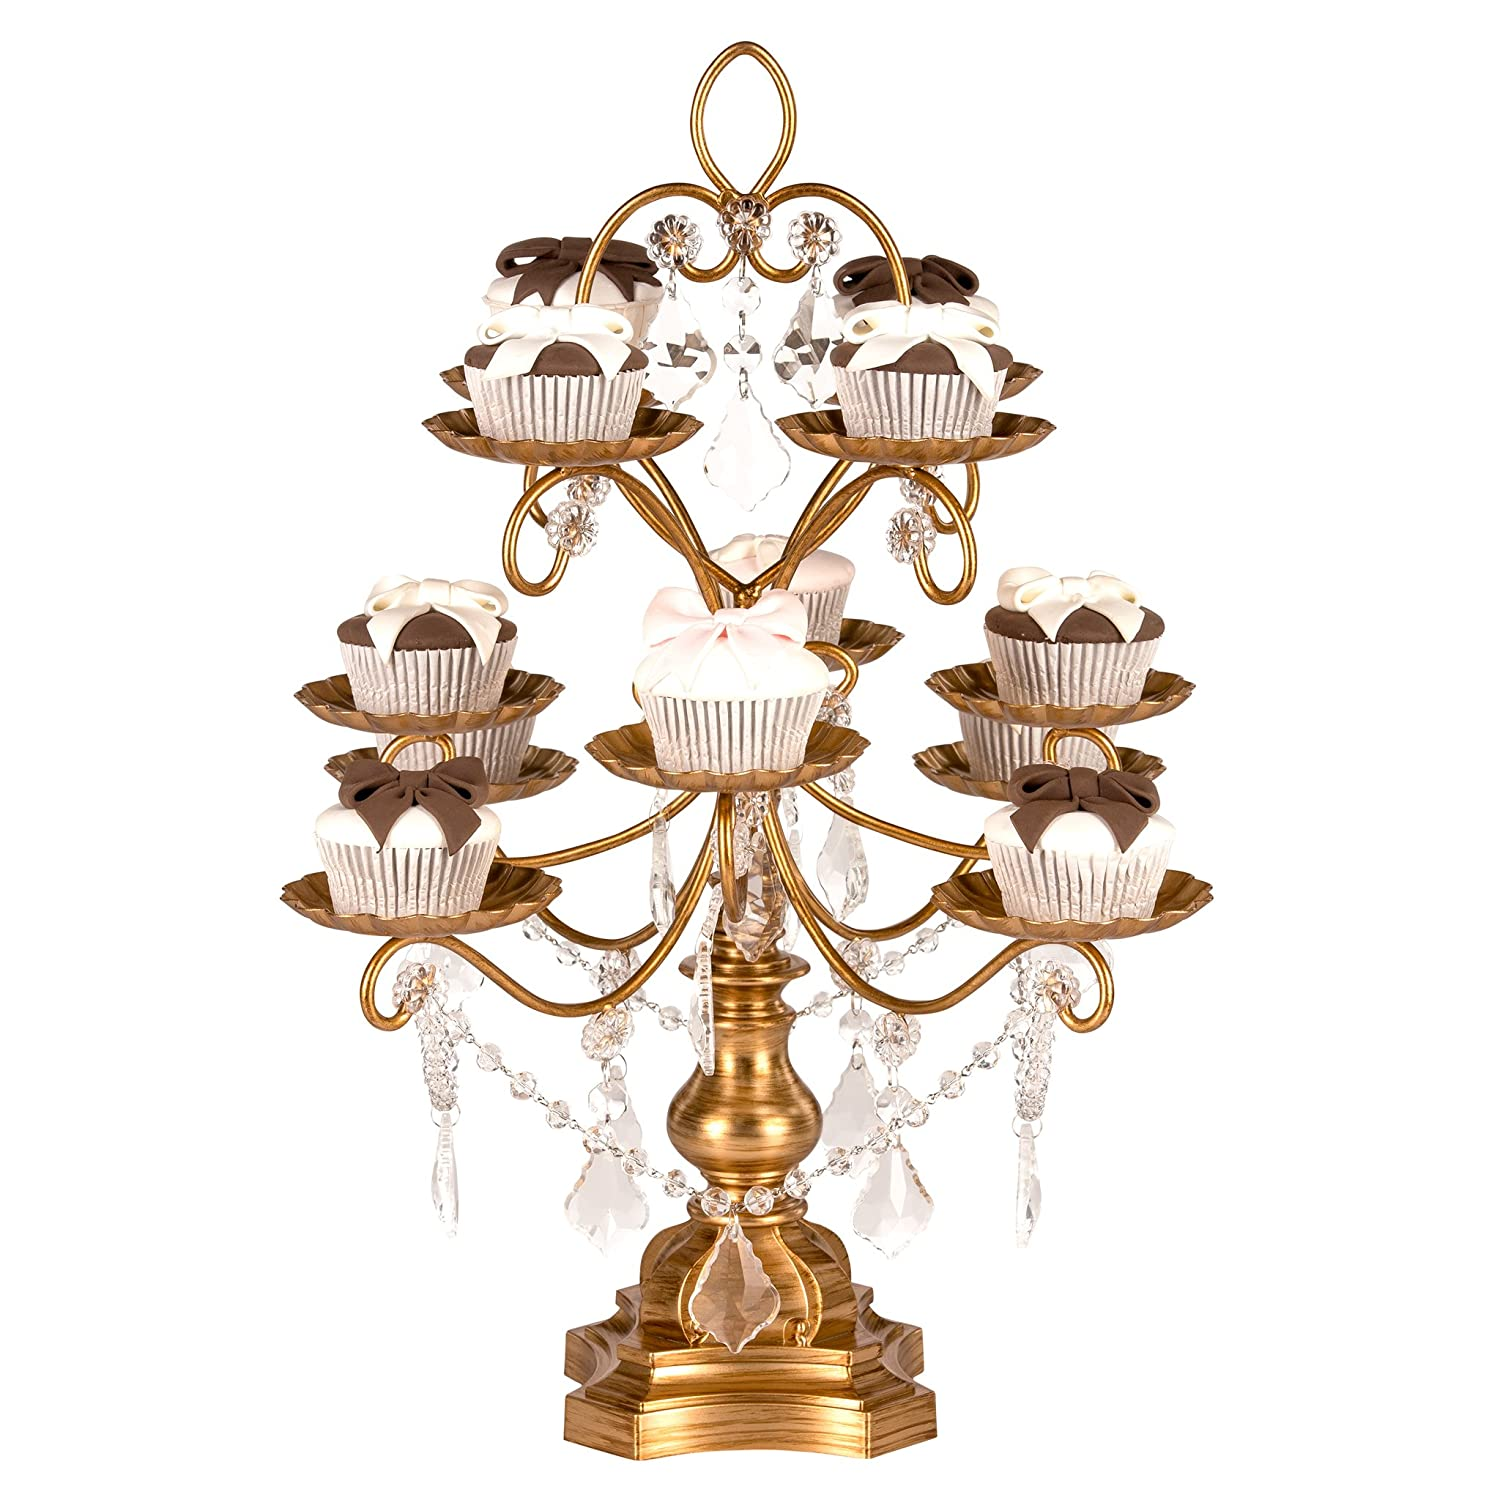 Amalfi Décor Madeleine Collection Antique Gold 12-Piece Cupcake Stand, Metal Tiered Cake Dessert Display Tower Holder with Crystals CS302MG